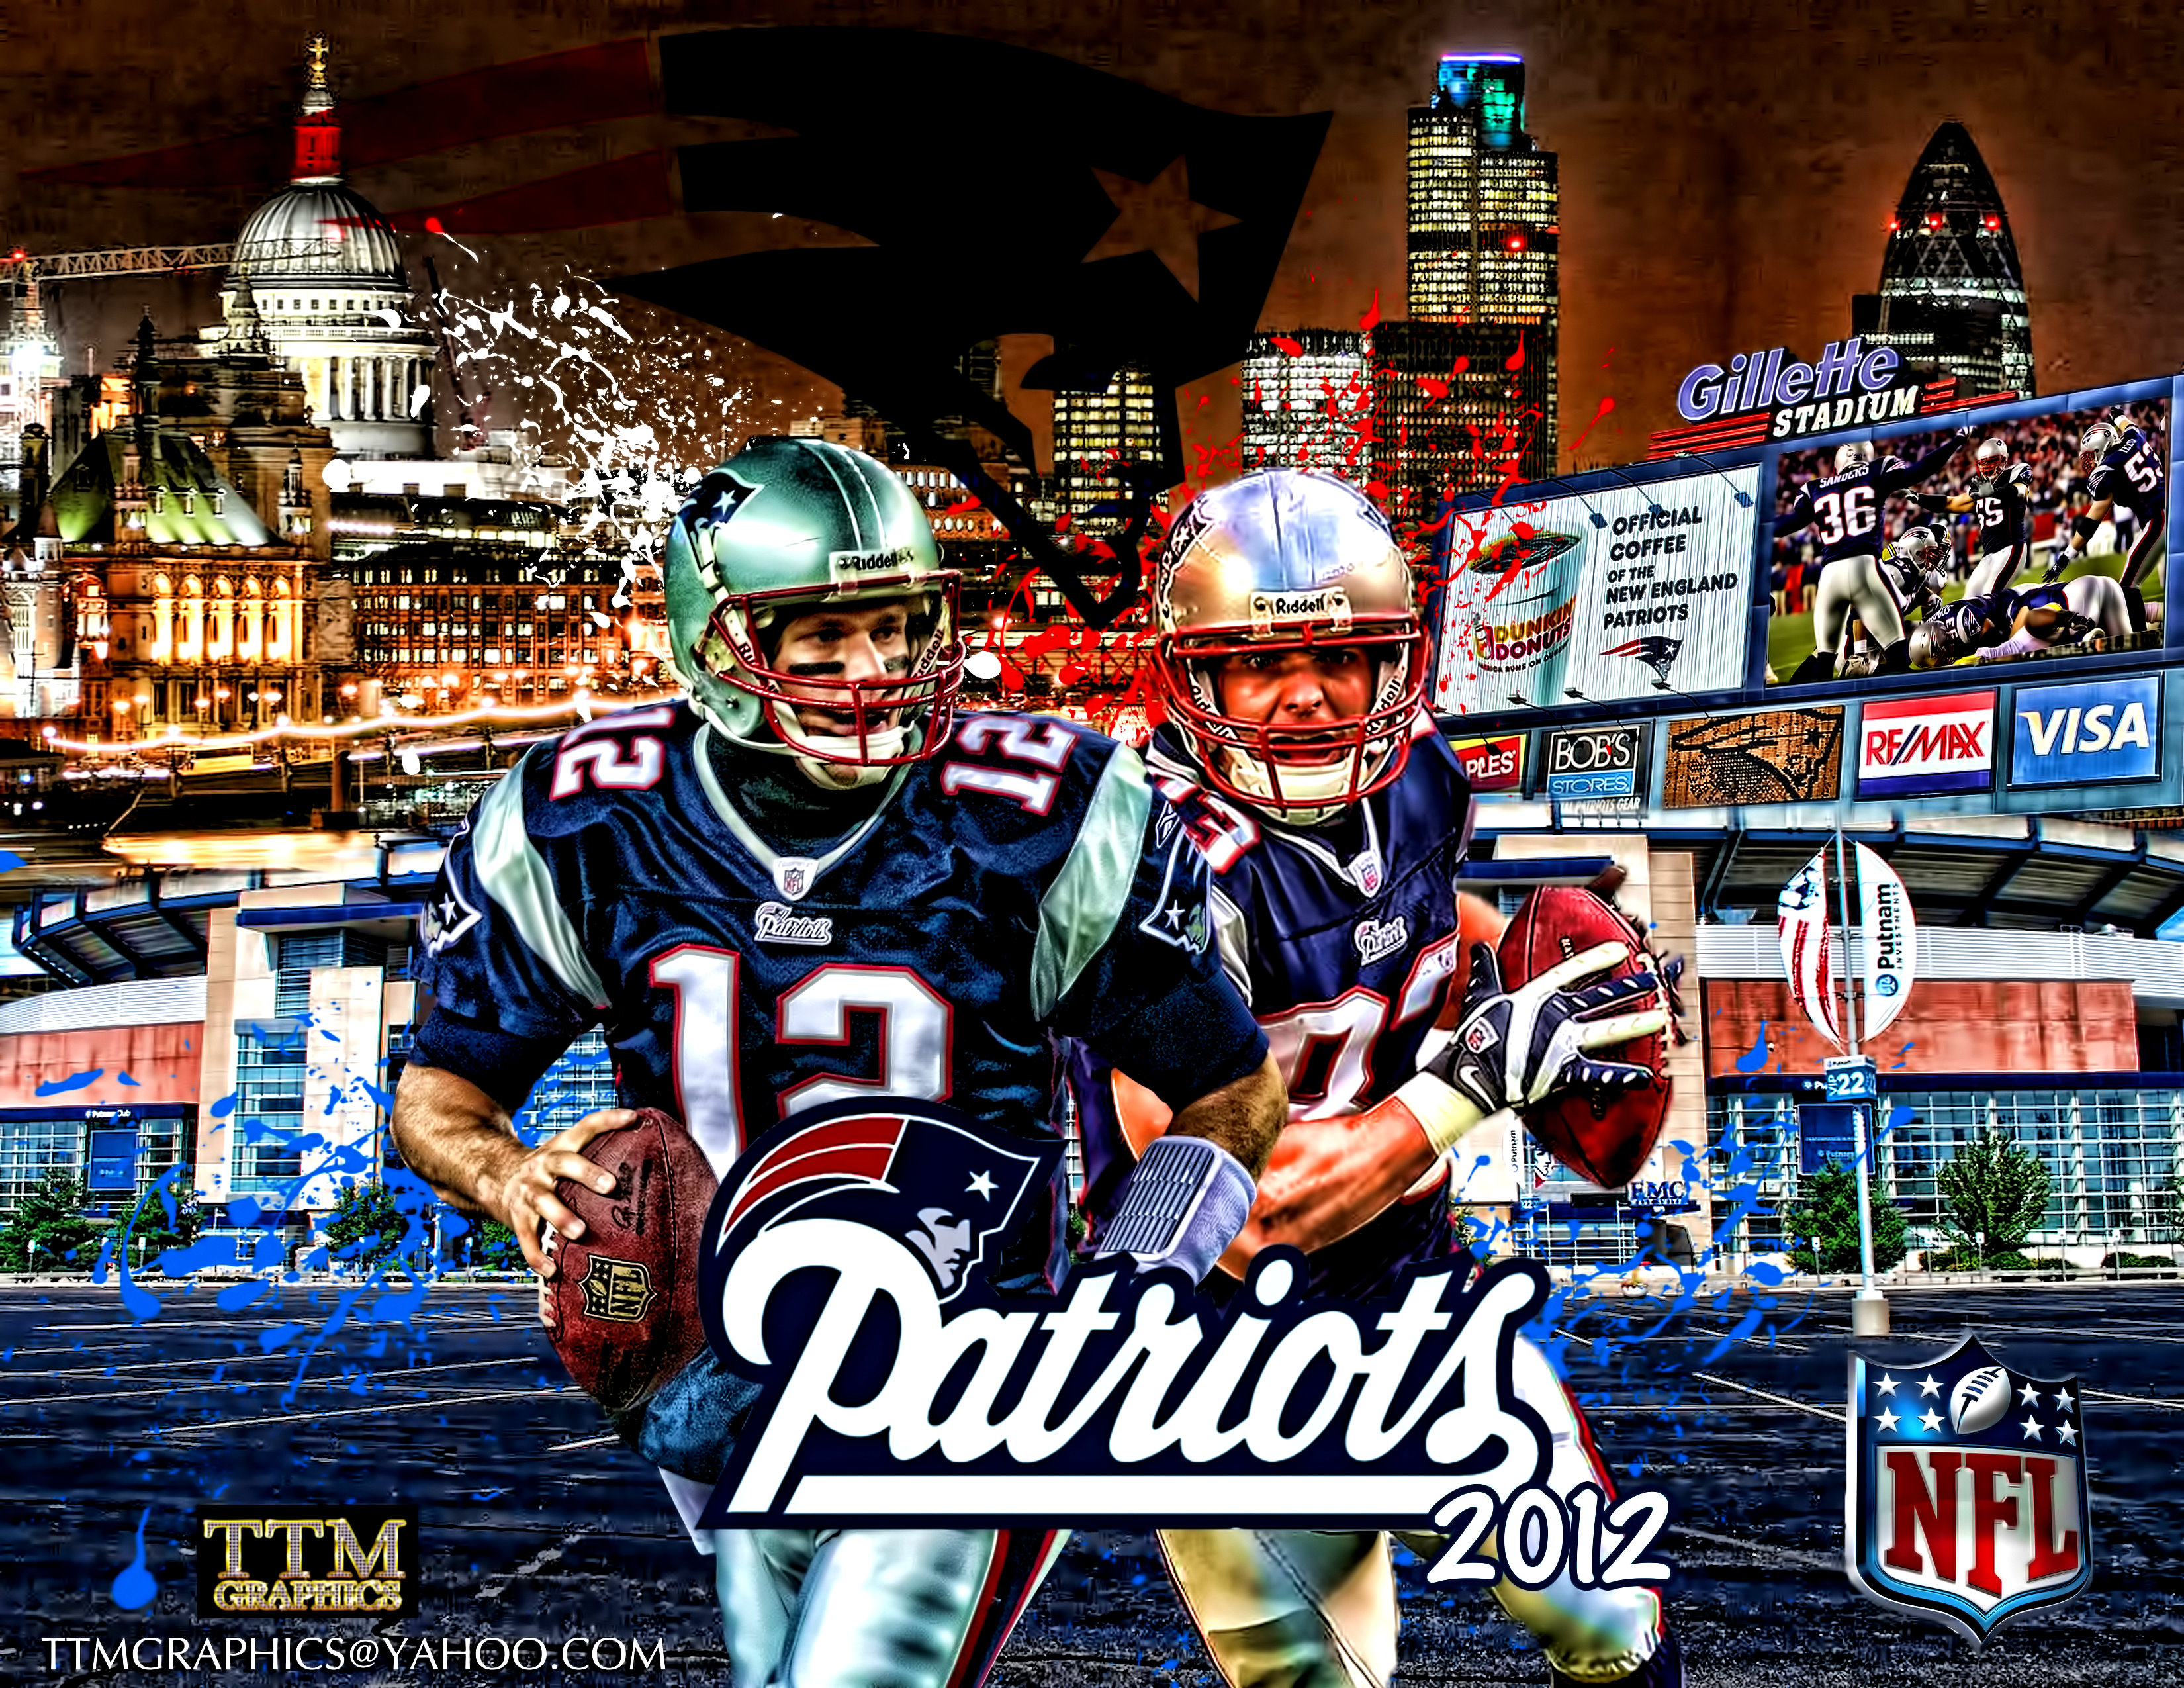 New England Patriots background New England Patriots wallpapers 3300x2550